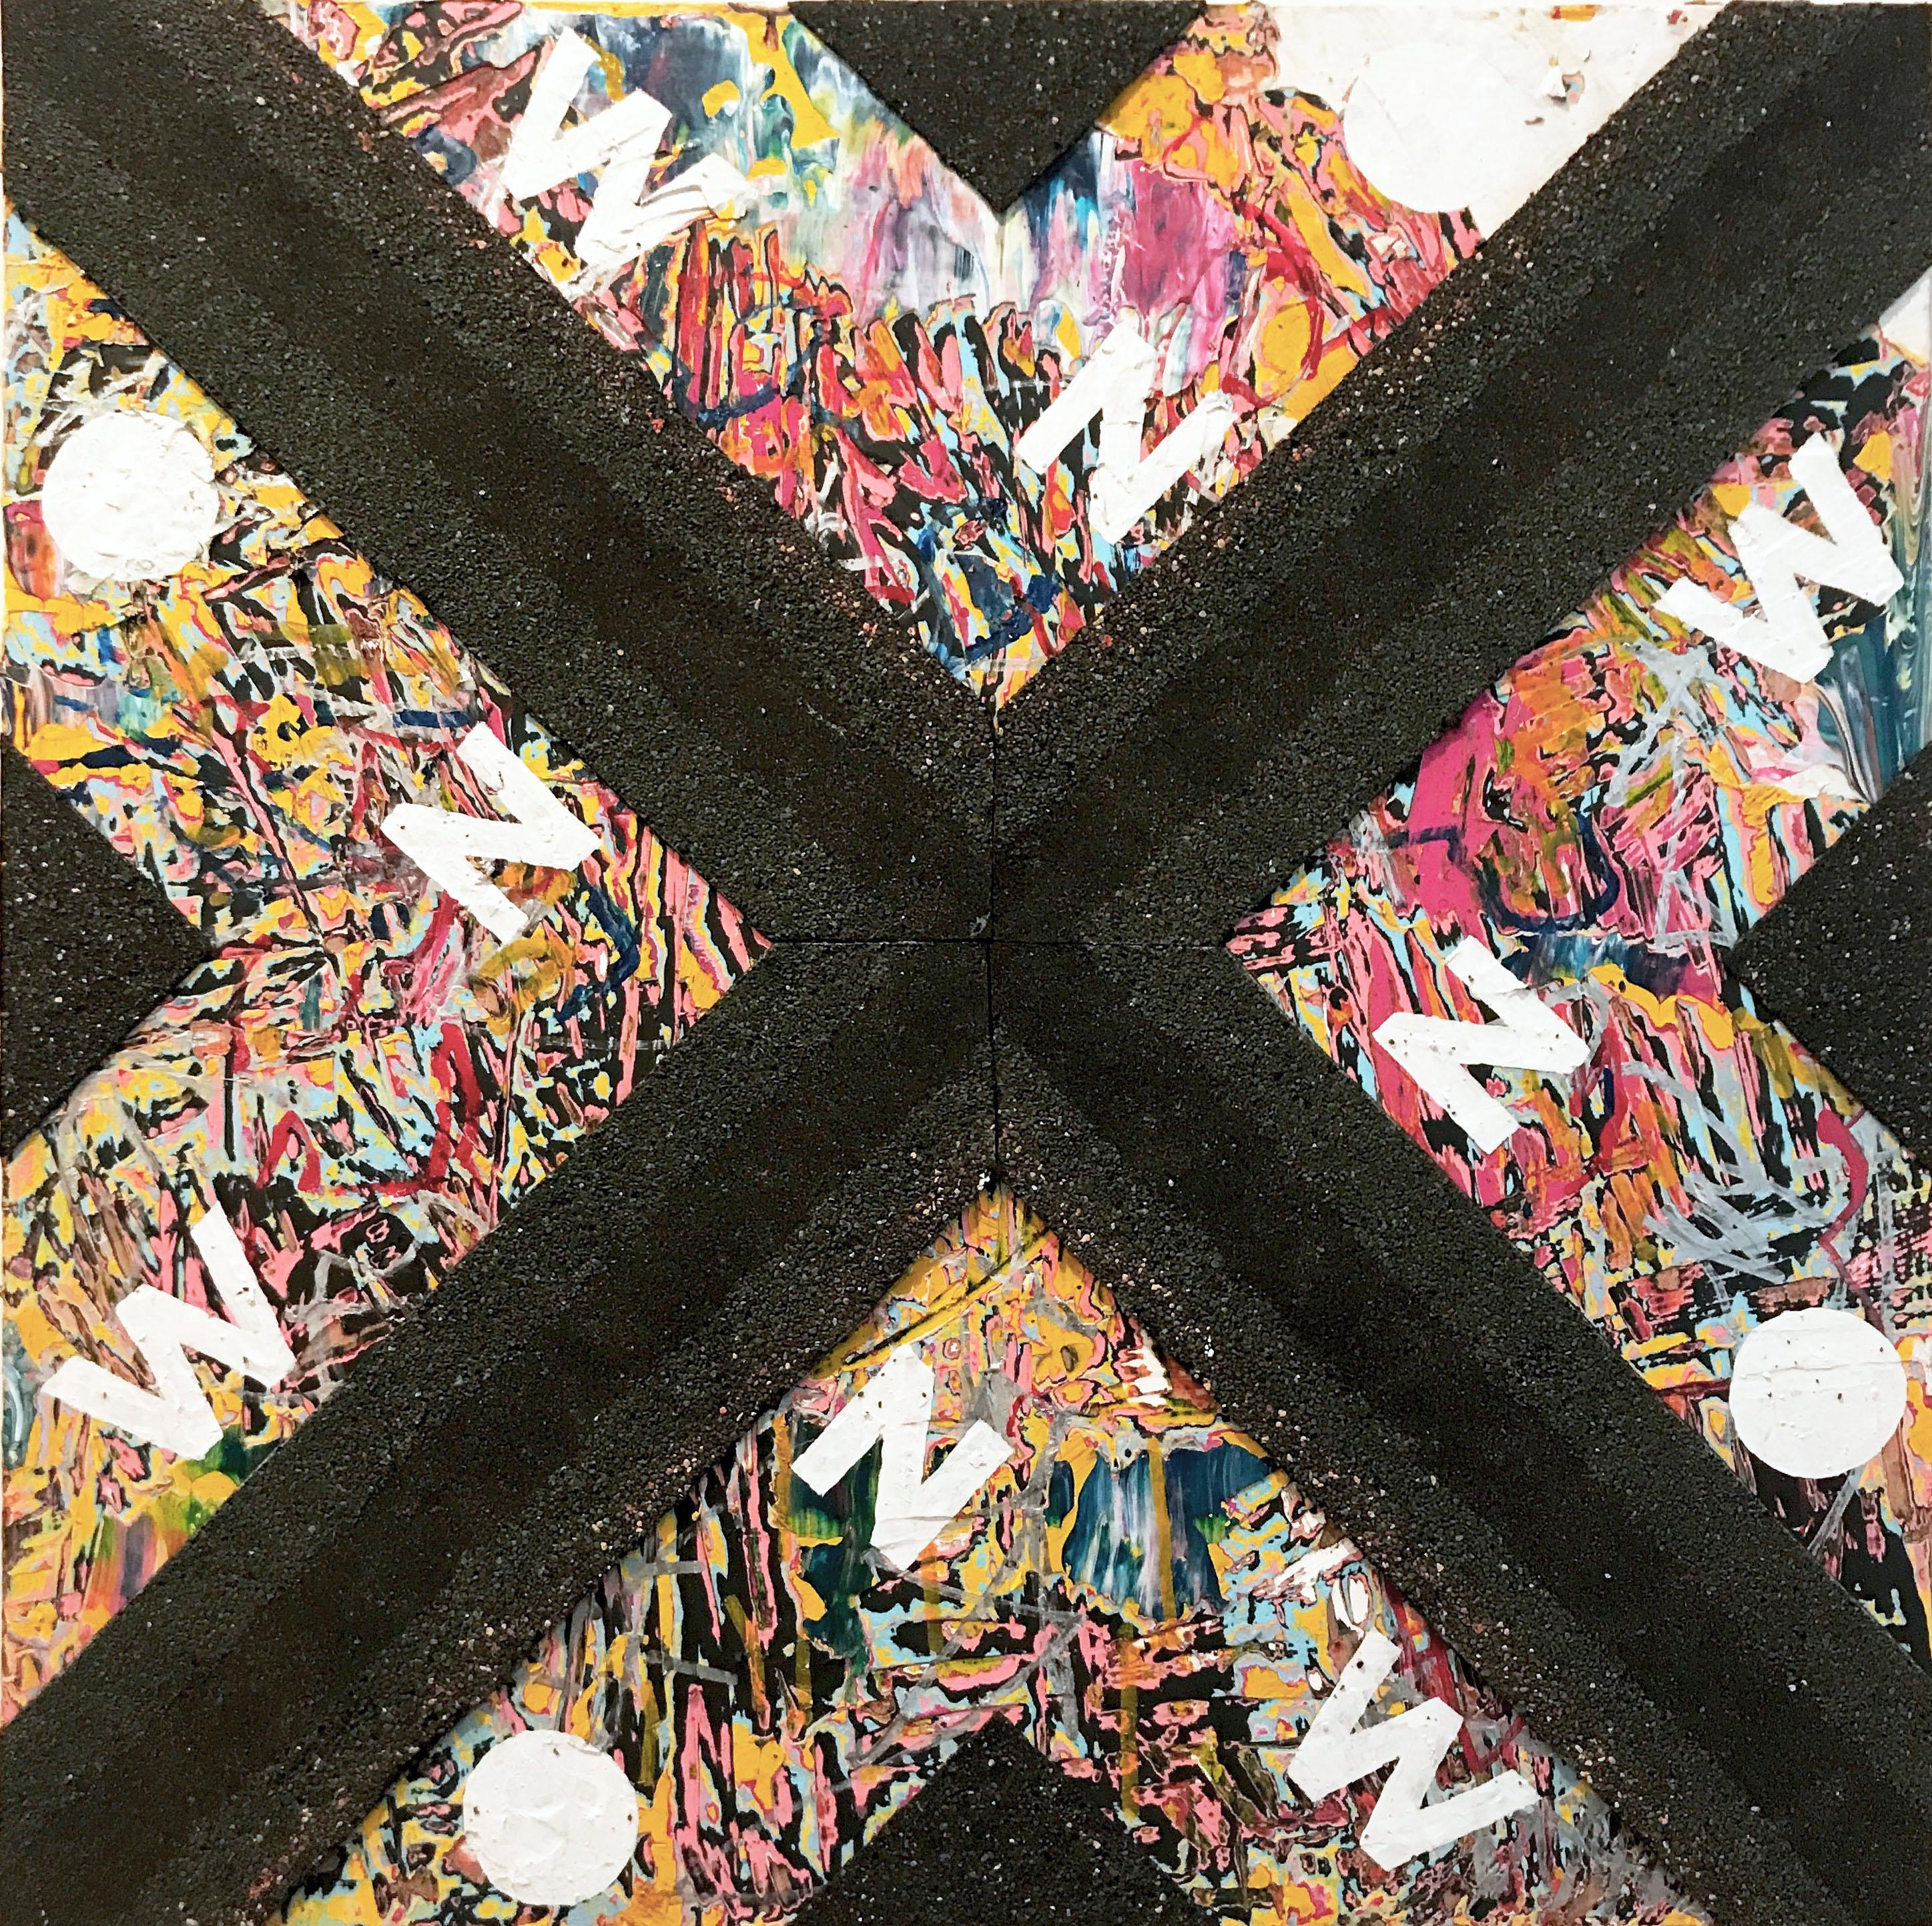 NOW VI - contemporary abstract mixed media painting; black asphalt, text, words